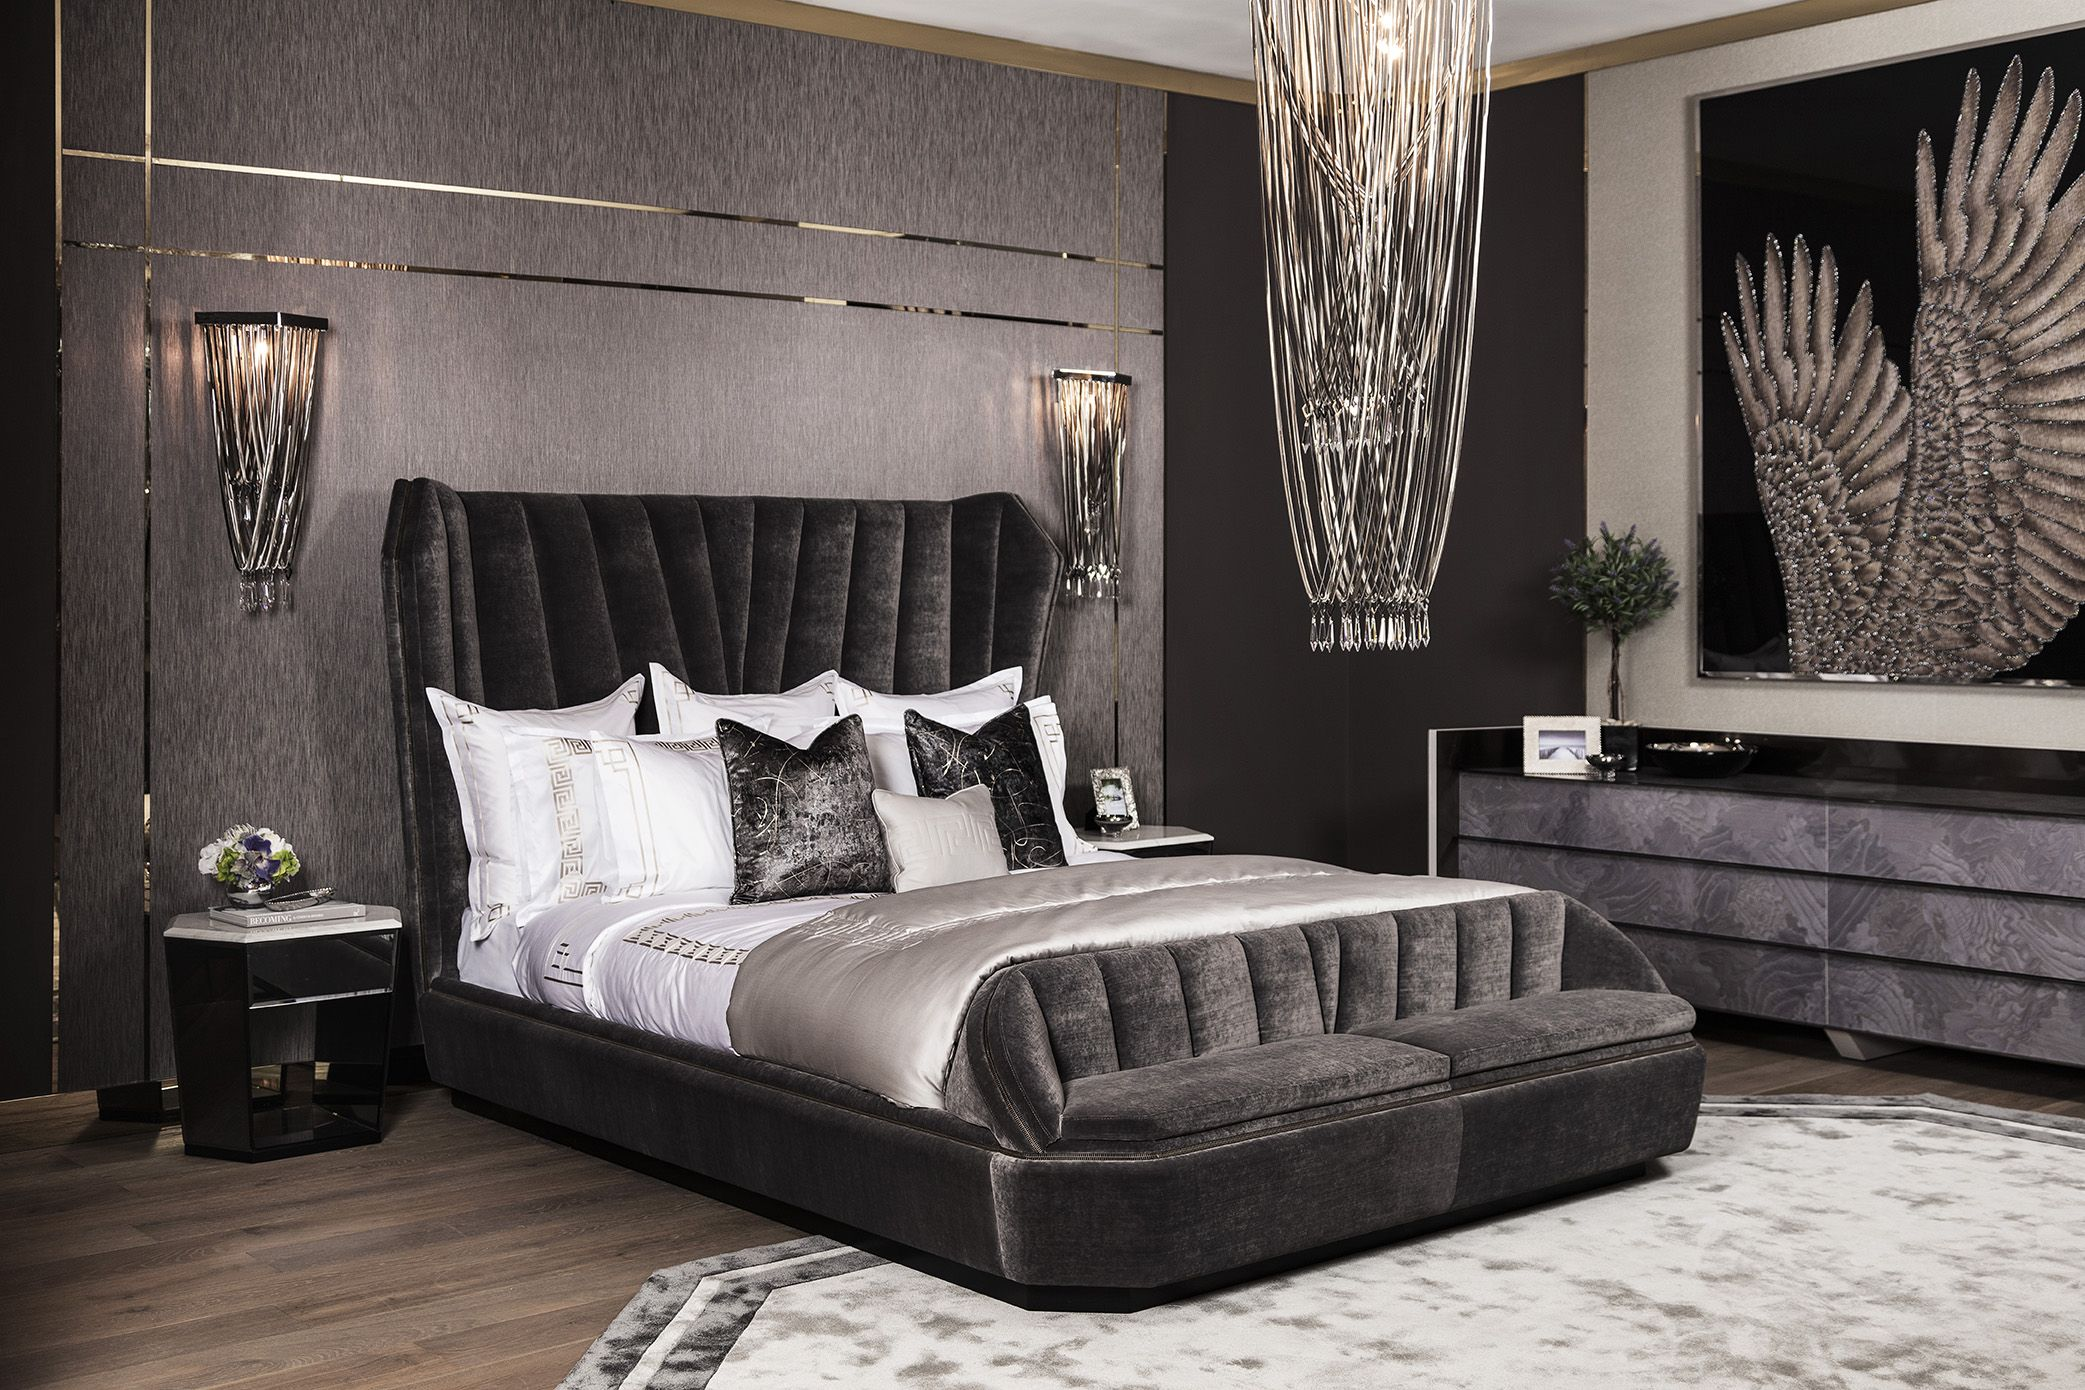 Hemingway Bed With Its Dramatic And Grand Silhouette The Hemingway By Visionnaire Perfectly Showcases The Furniture Sofa And Chair Company Headboards For Beds